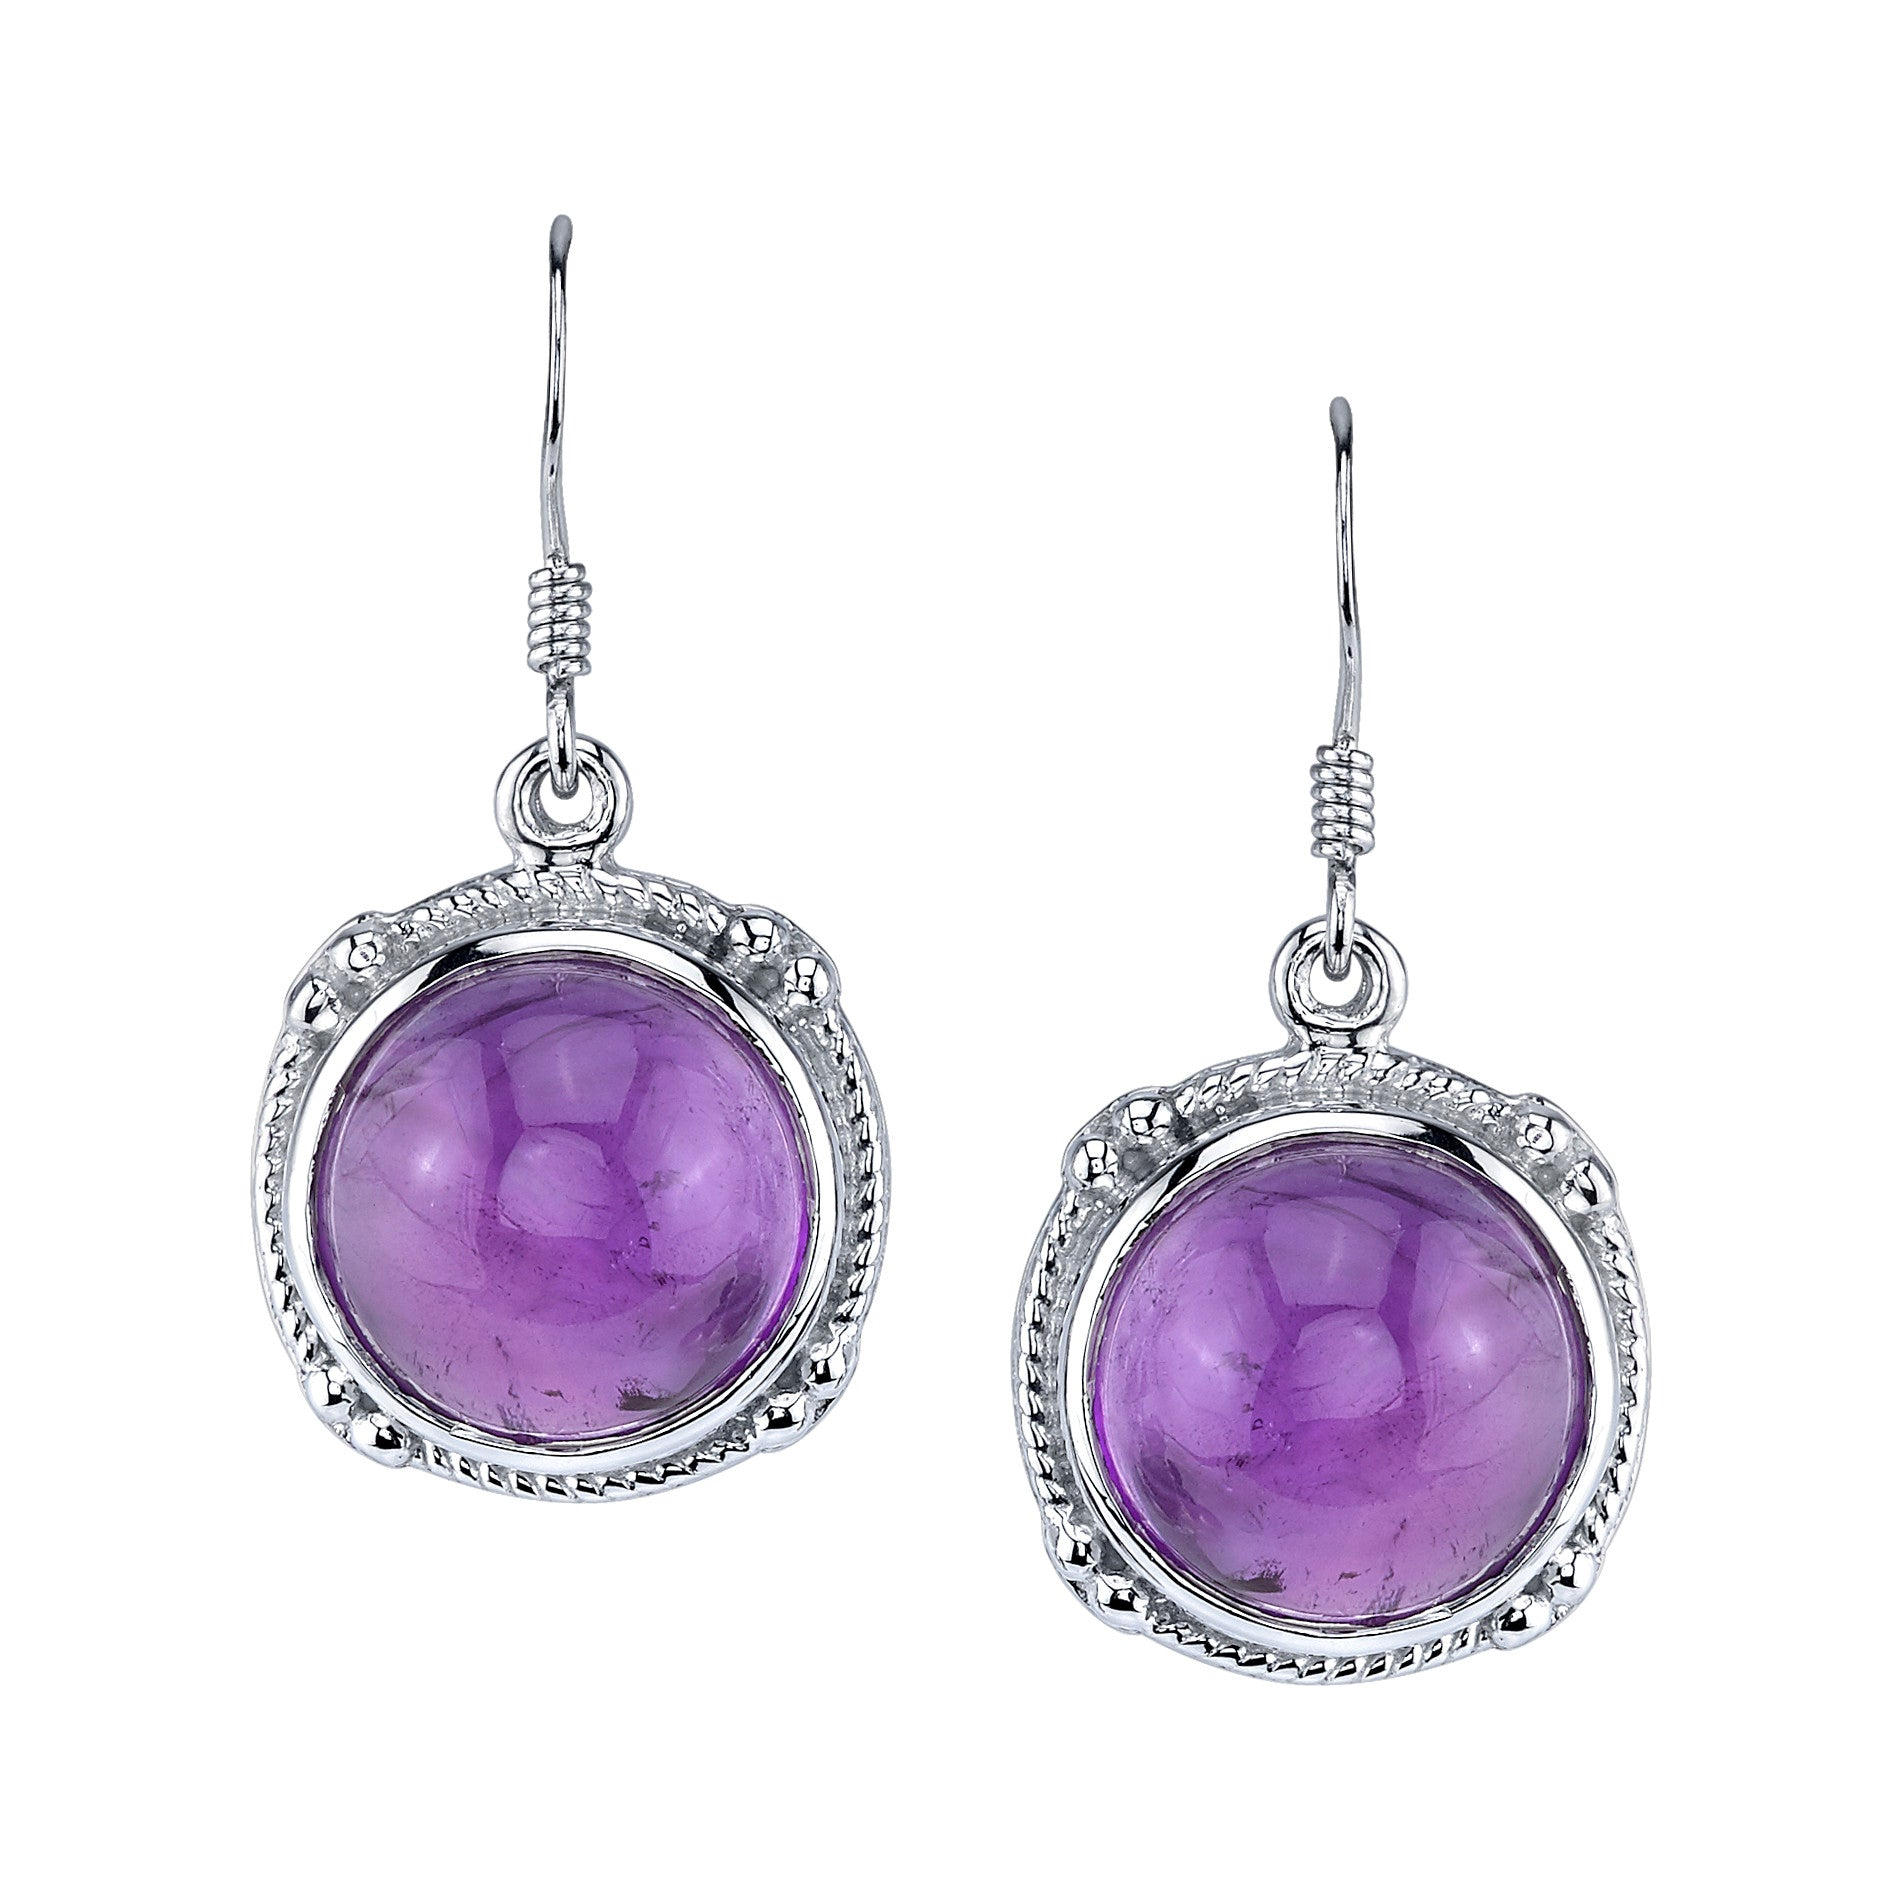 Round Amethyst Cabochon Drop Earrings